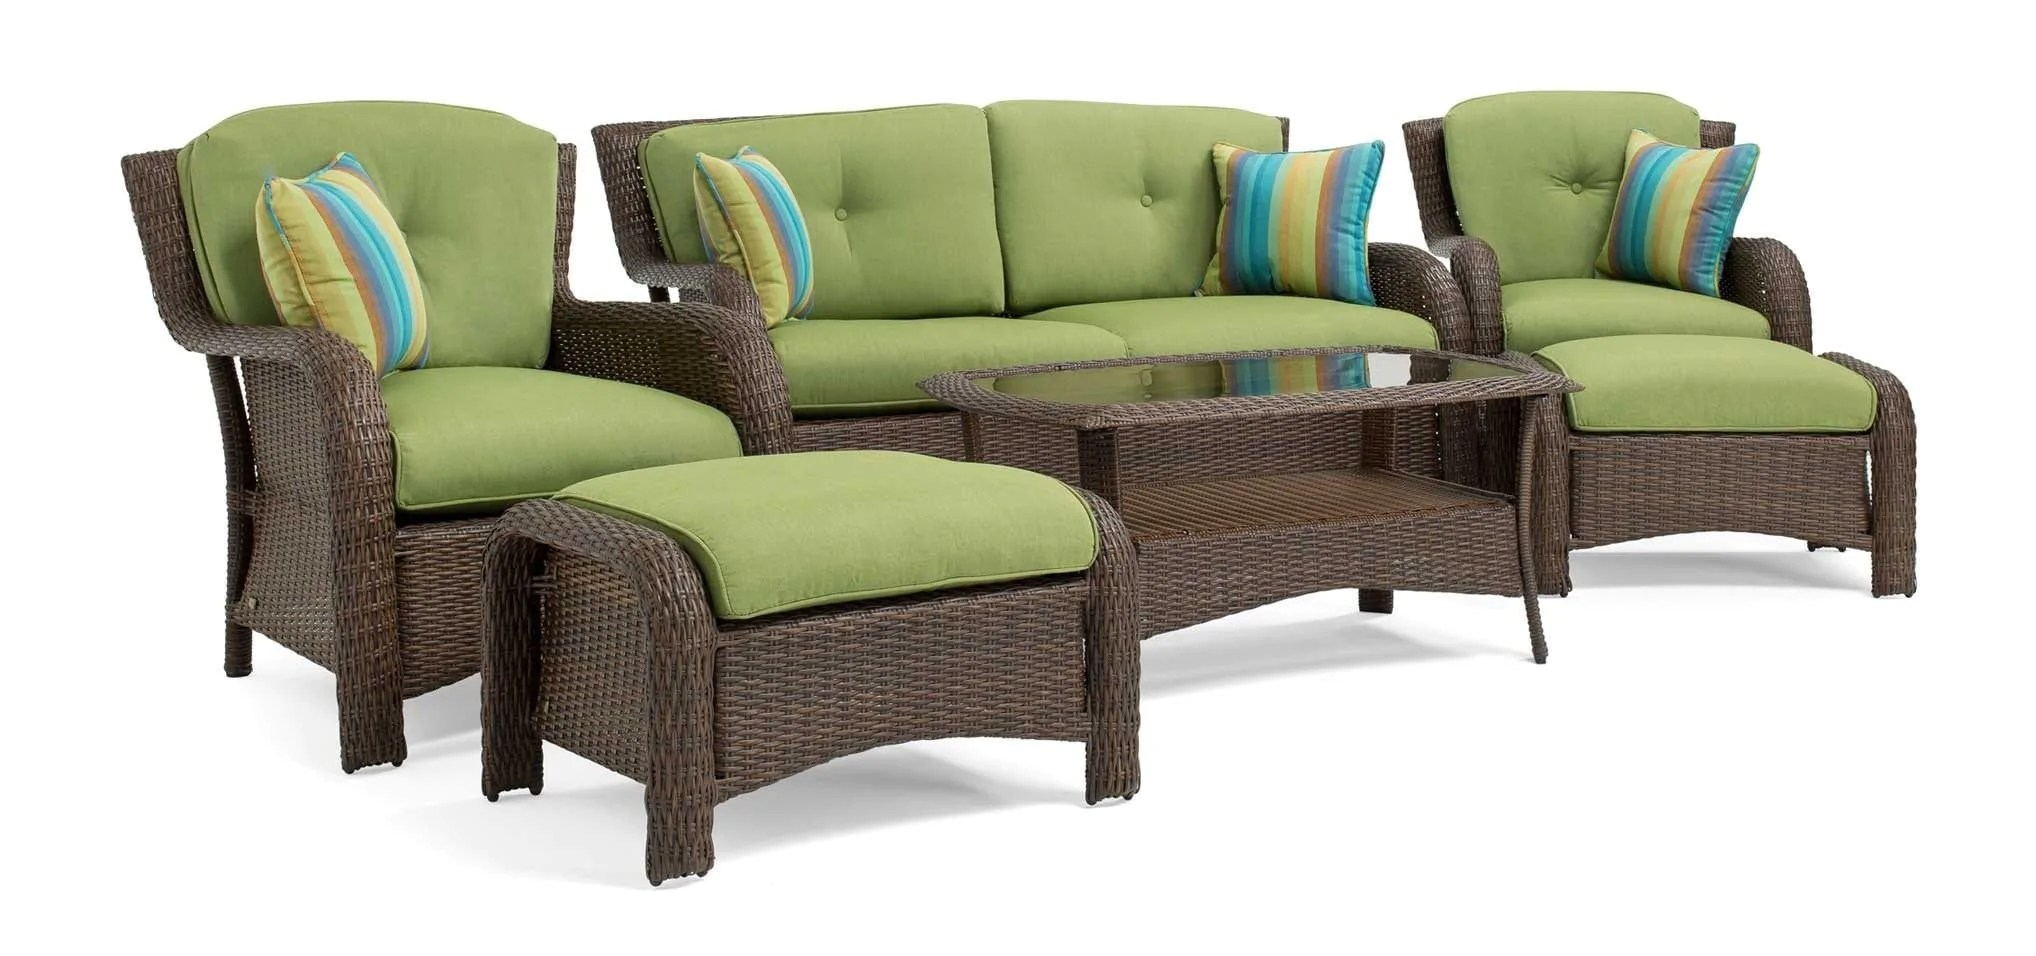 Green Patio Chairs Sawyer 6pc Resin Wicker Patio Furniture Conversation Set